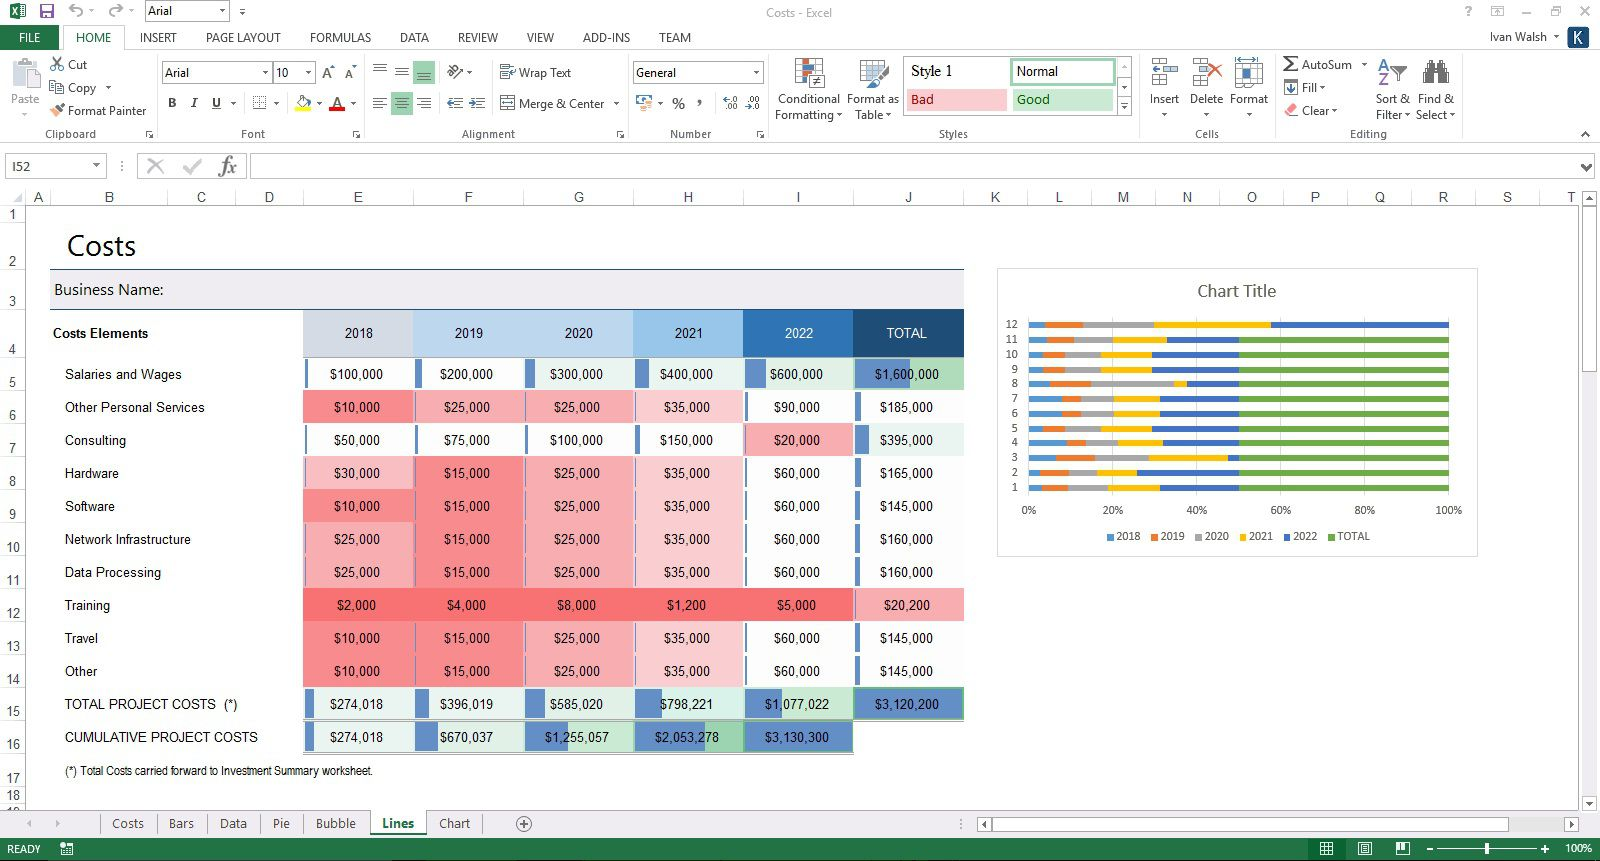 004 Dreaded Busines Plan Template Excel Inspiration  Financial Free ContinuityFull